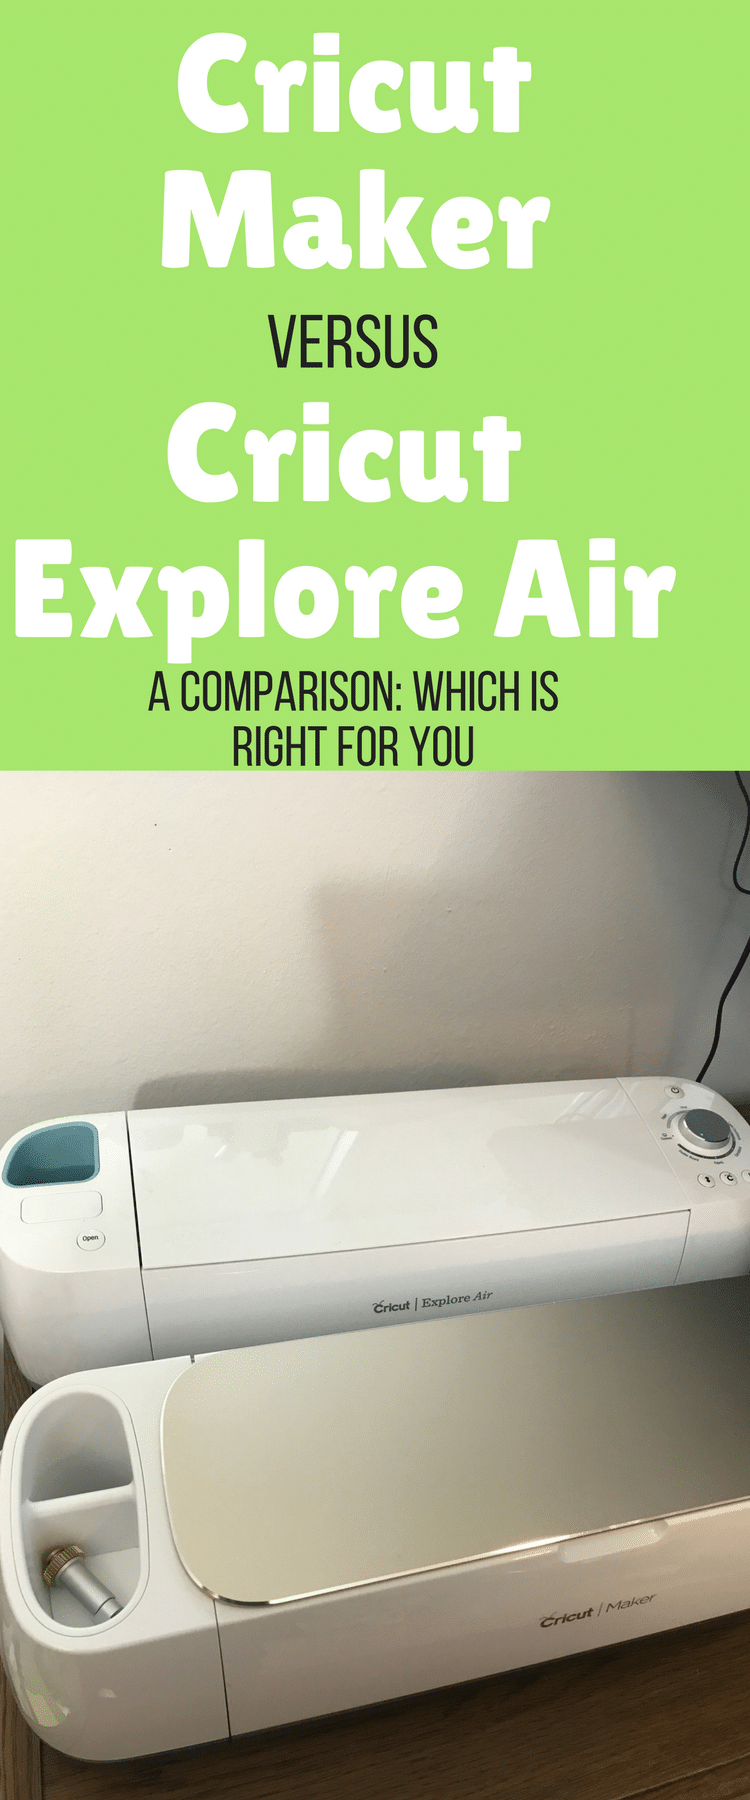 Cricut Maker vs Cricut Explore Air – Which Cricut Machine Should You Buy?